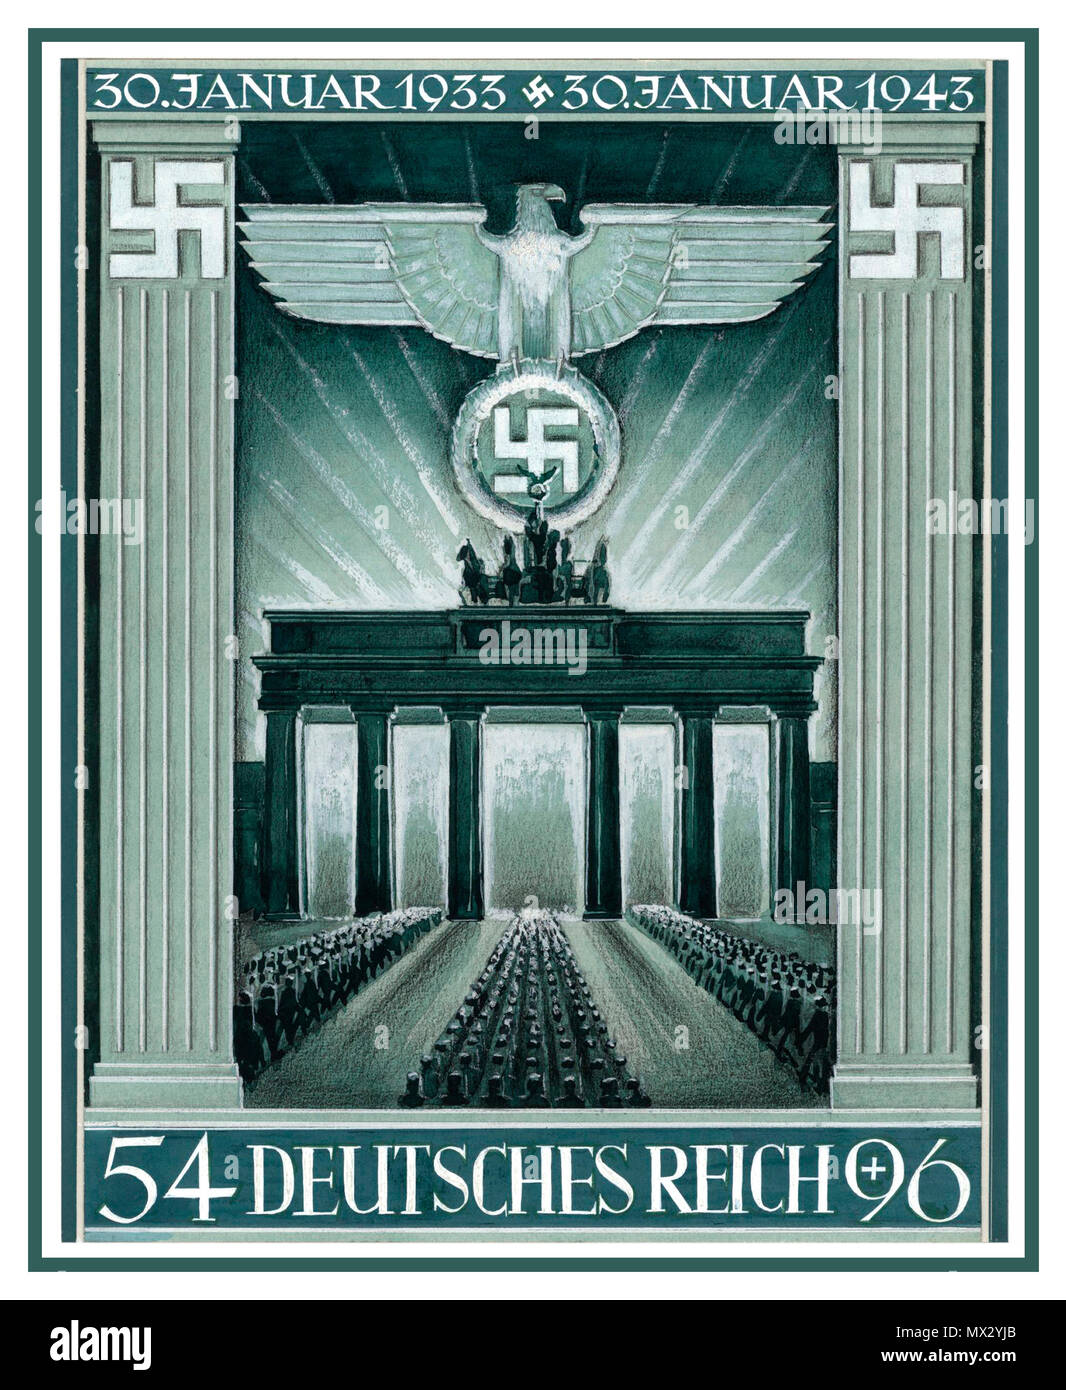 Vintage Nazi prepared original artwork propaganda Brandenburg Gate Berlin Nazi Germany 10th anniversary of the Nazi takeover by Hitler 1933-1943 artwork for Deutsches Reich commemorative stamp first day of issue Jan 1943 Graphics by G. Klein - Stock Image